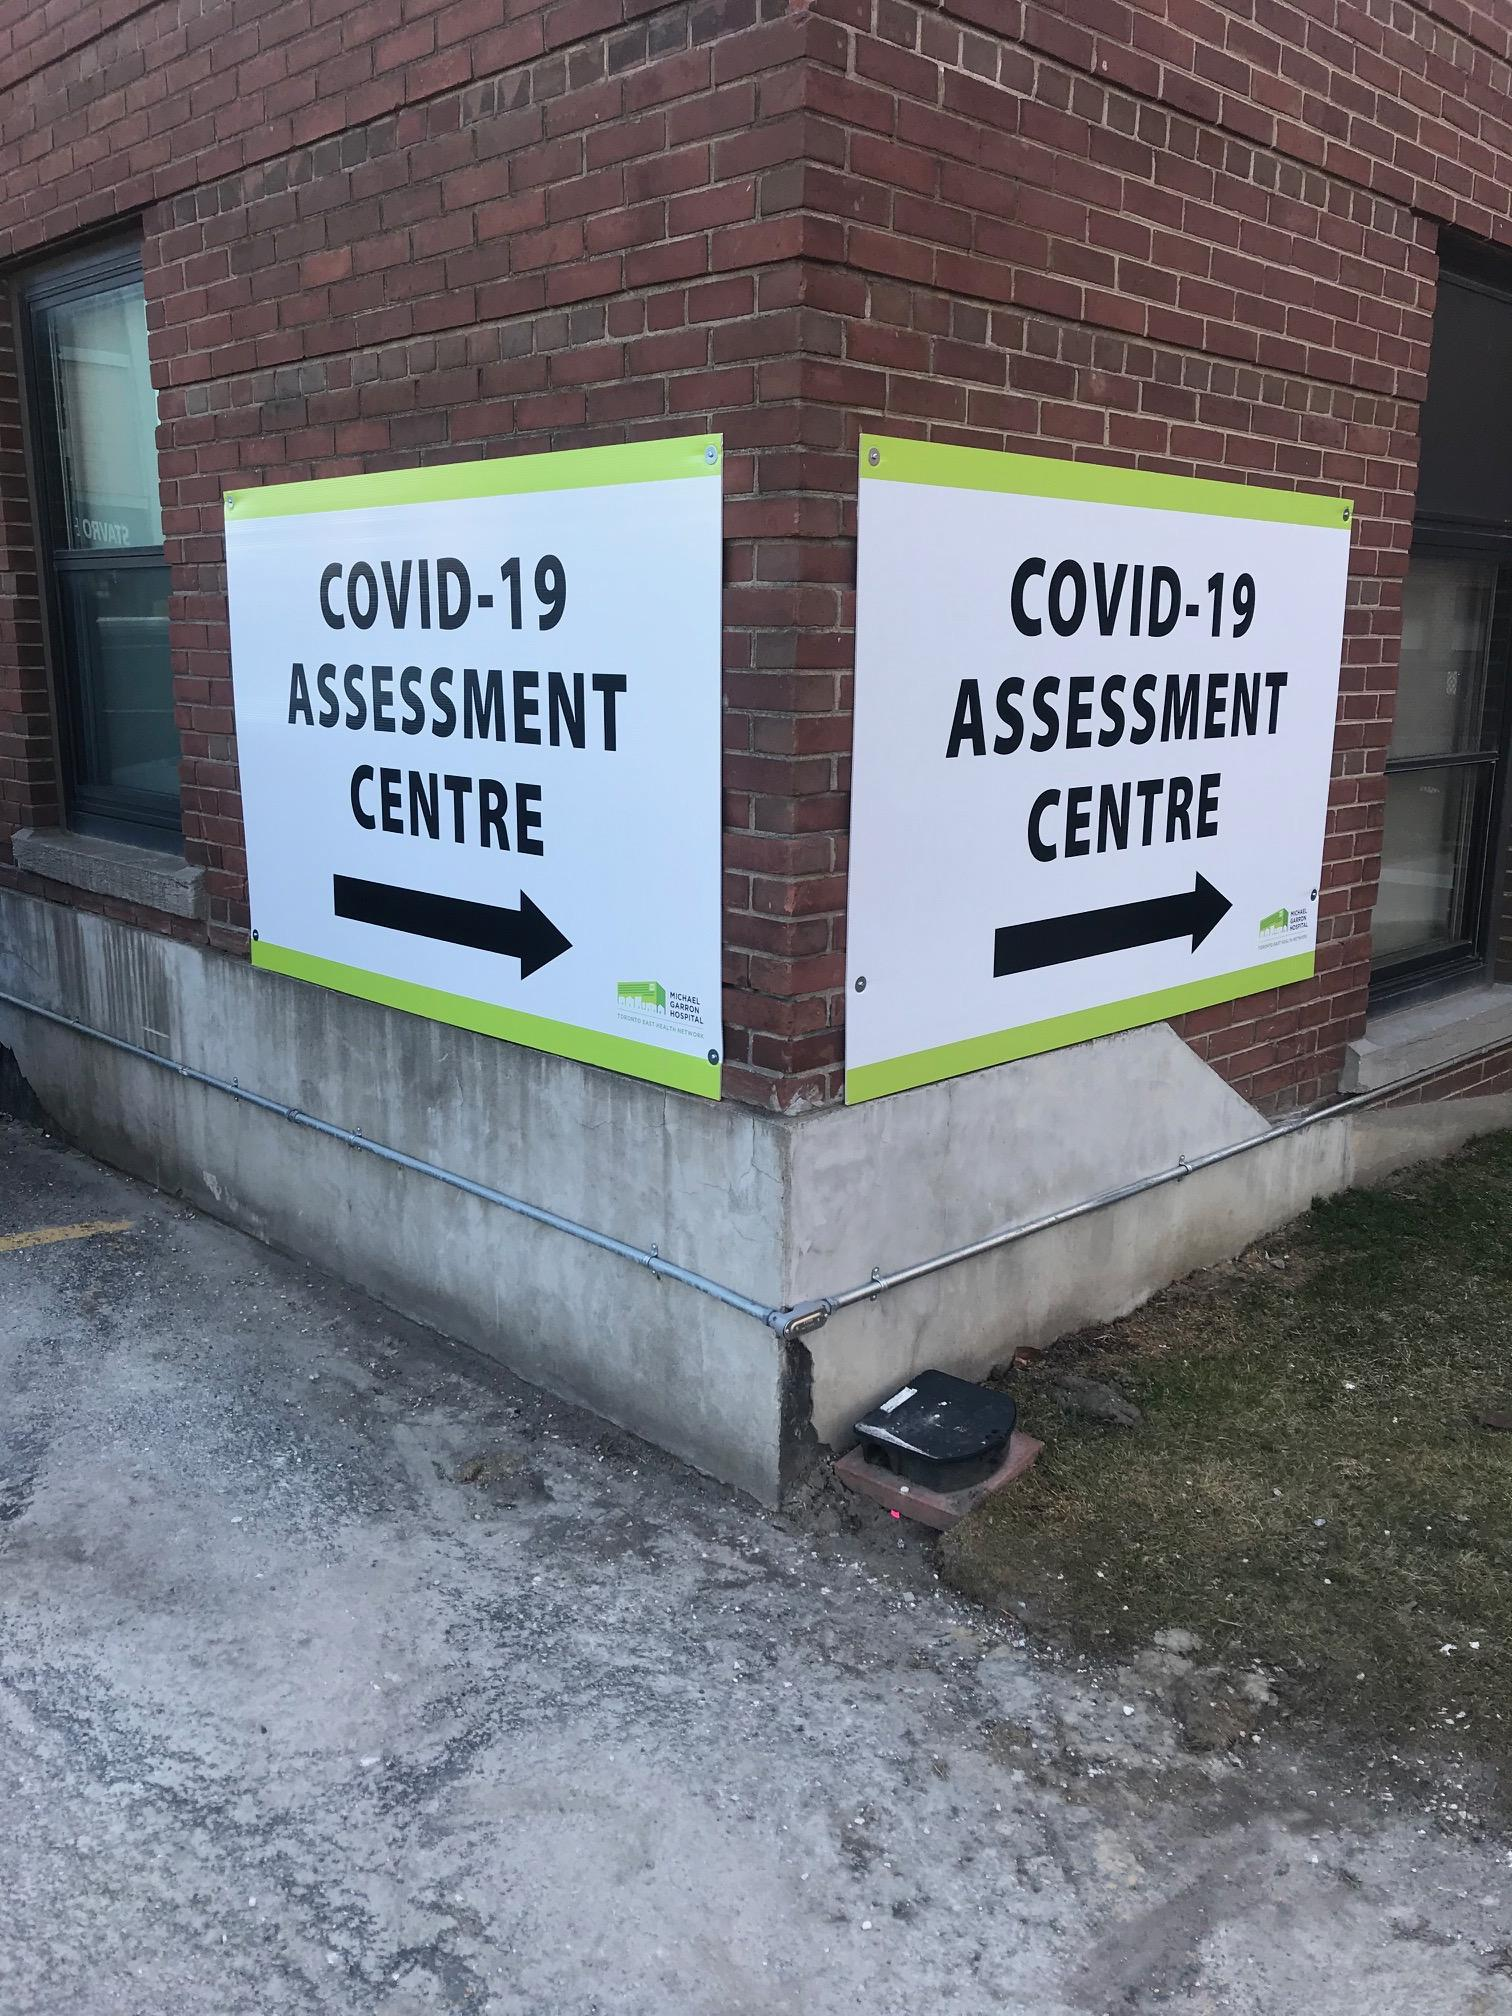 Breaking Down The Numbers The Number Of New Covid 19 Cases Remains Pretty Flat In Ontario